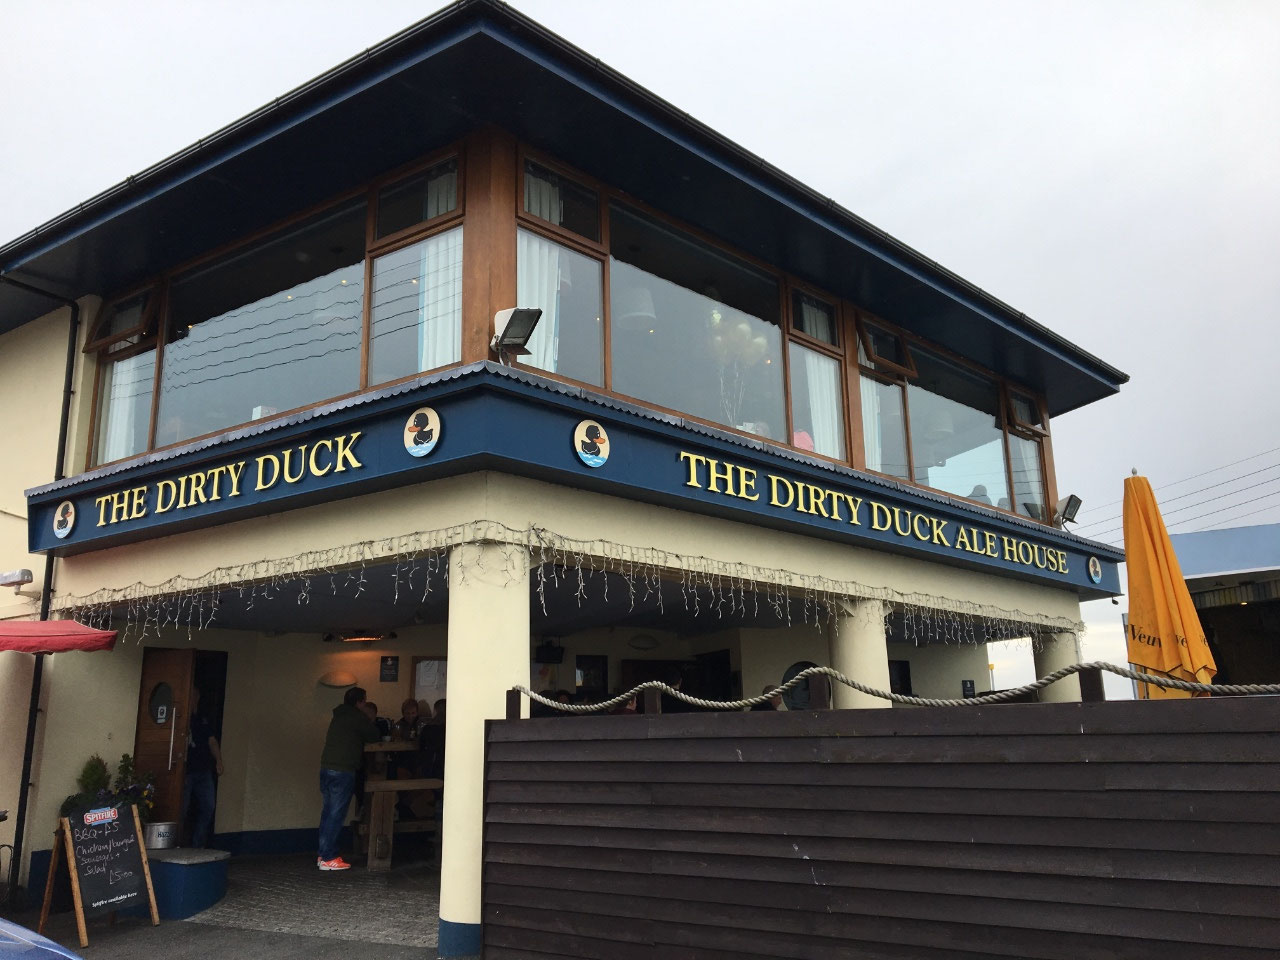 The Dirty Duck Ale House